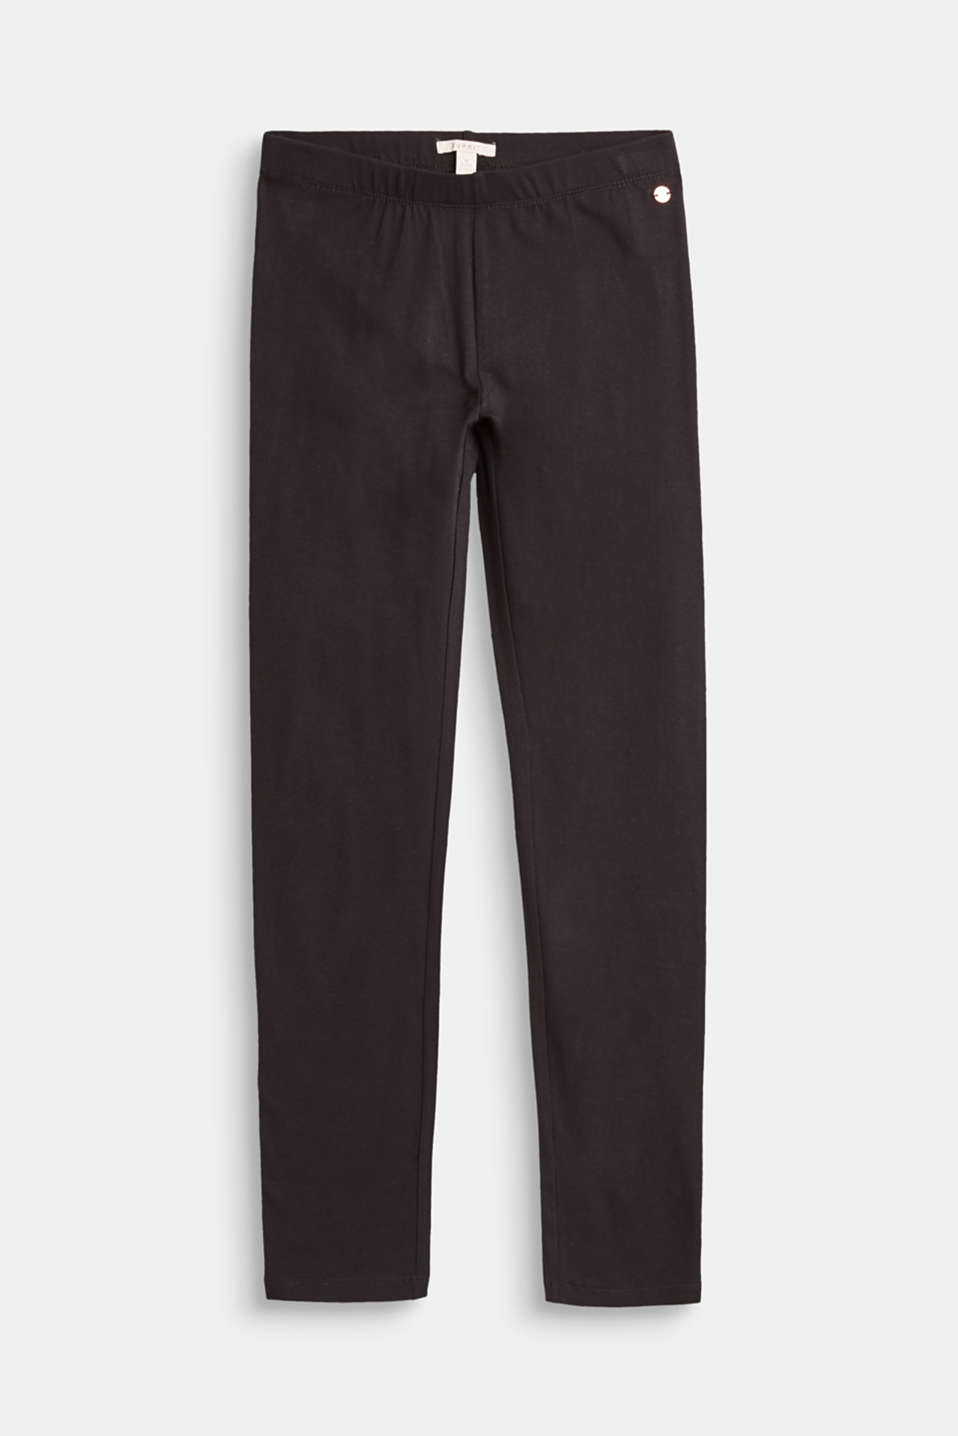 Esprit - Soft basic leggings made of stretch cotton